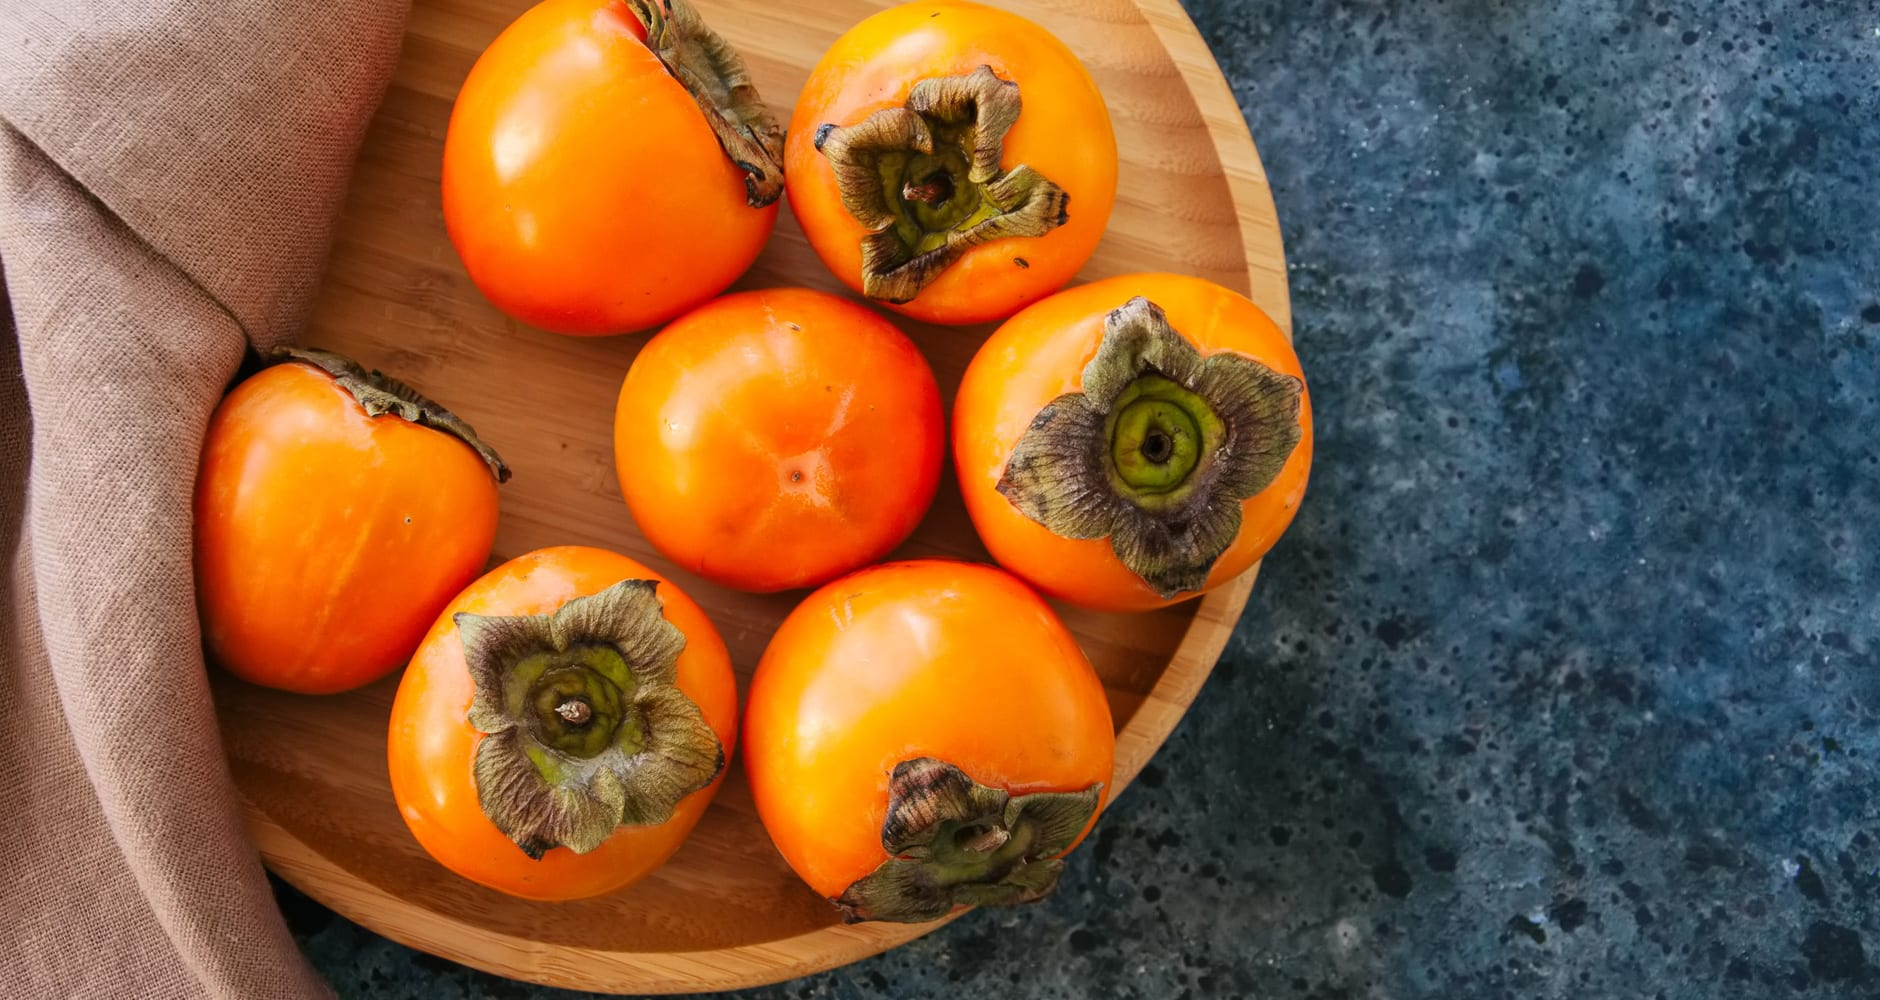 Persimmon seed forecast - a bowl of persimmons